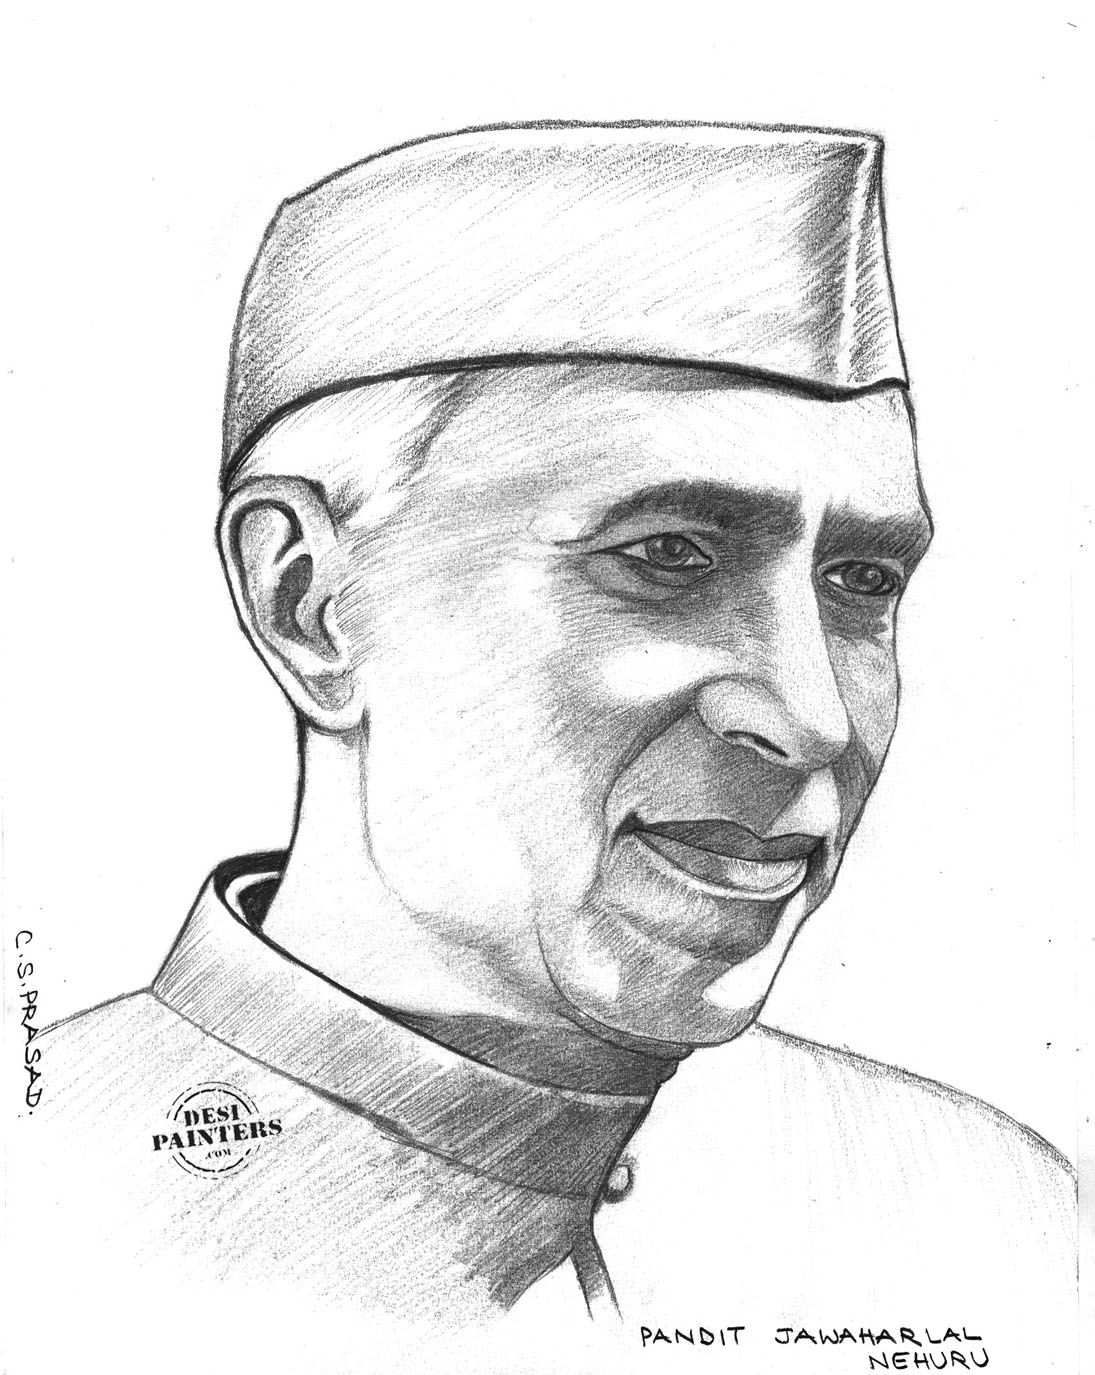 Who was the first prime minister of India?